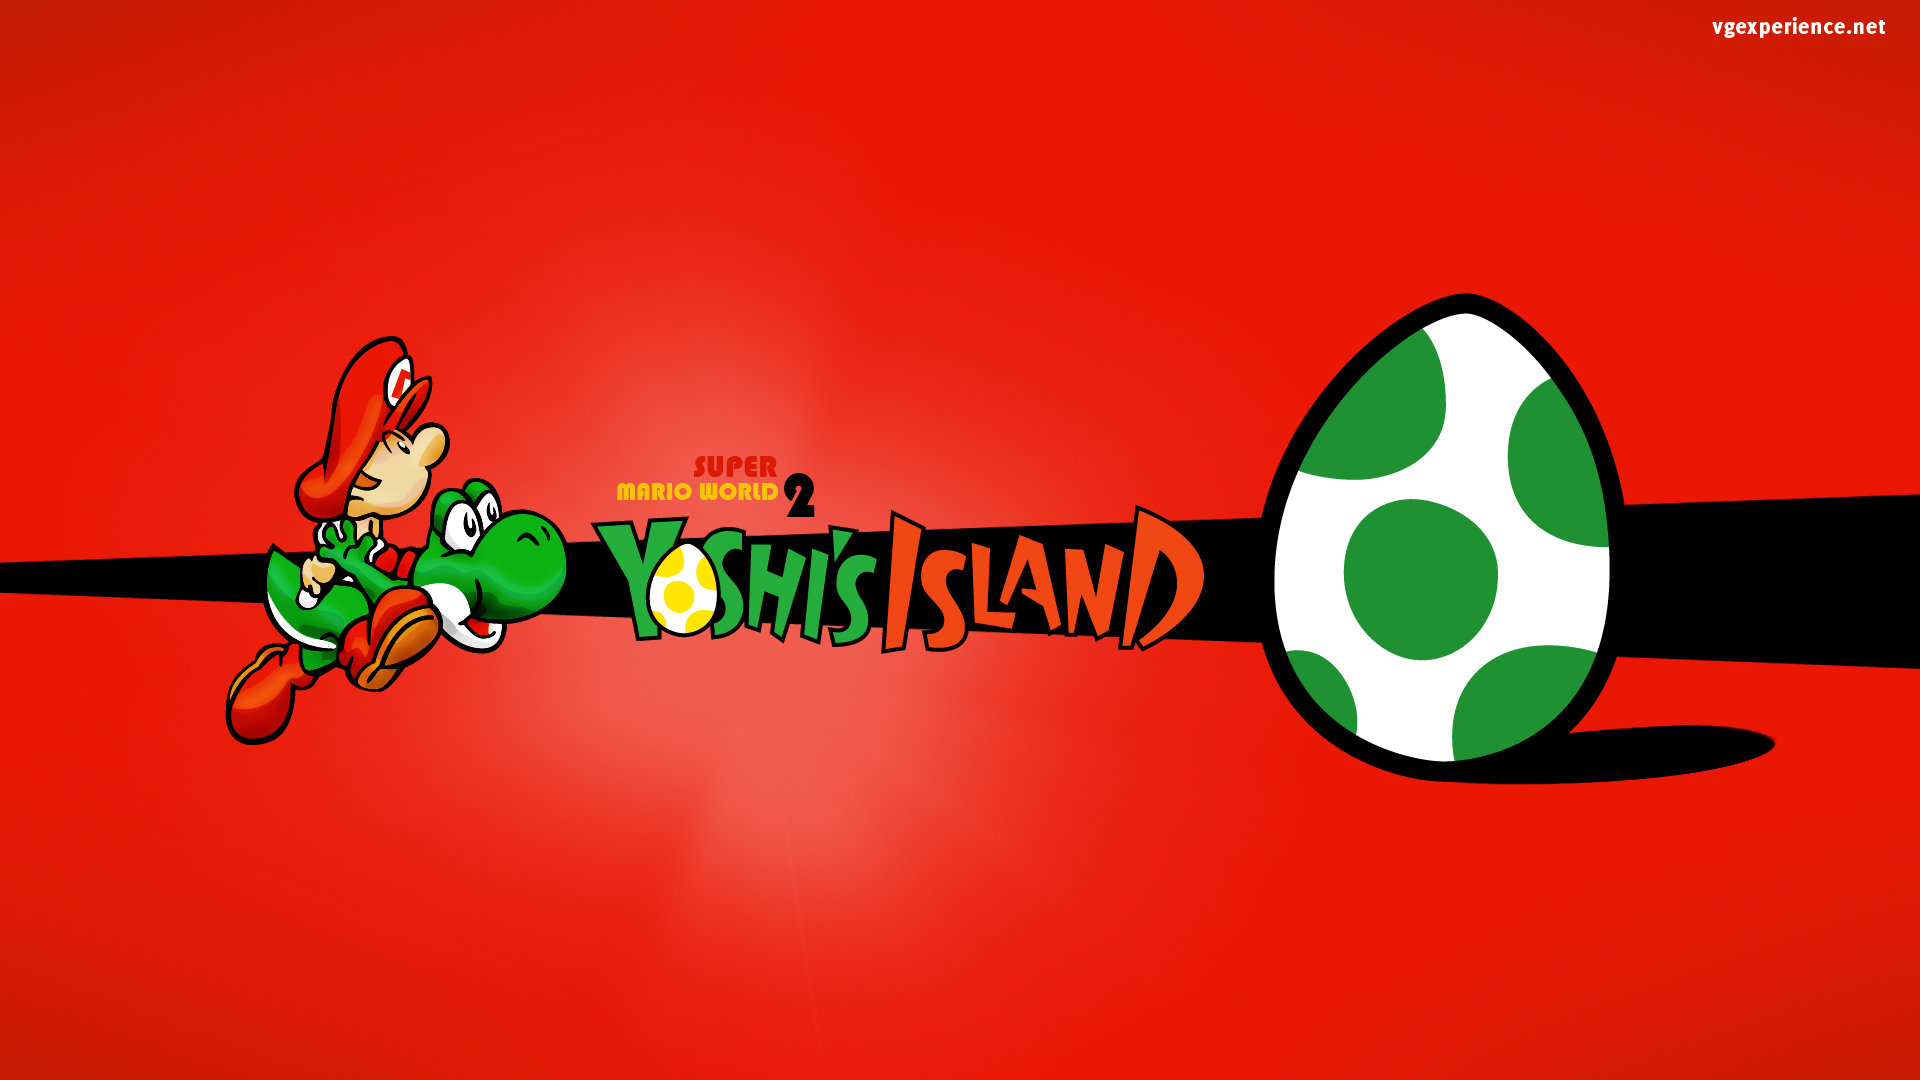 Download 1080p Super Mario World 2: Yoshi's Island computer wallpaper ID:321674 for free